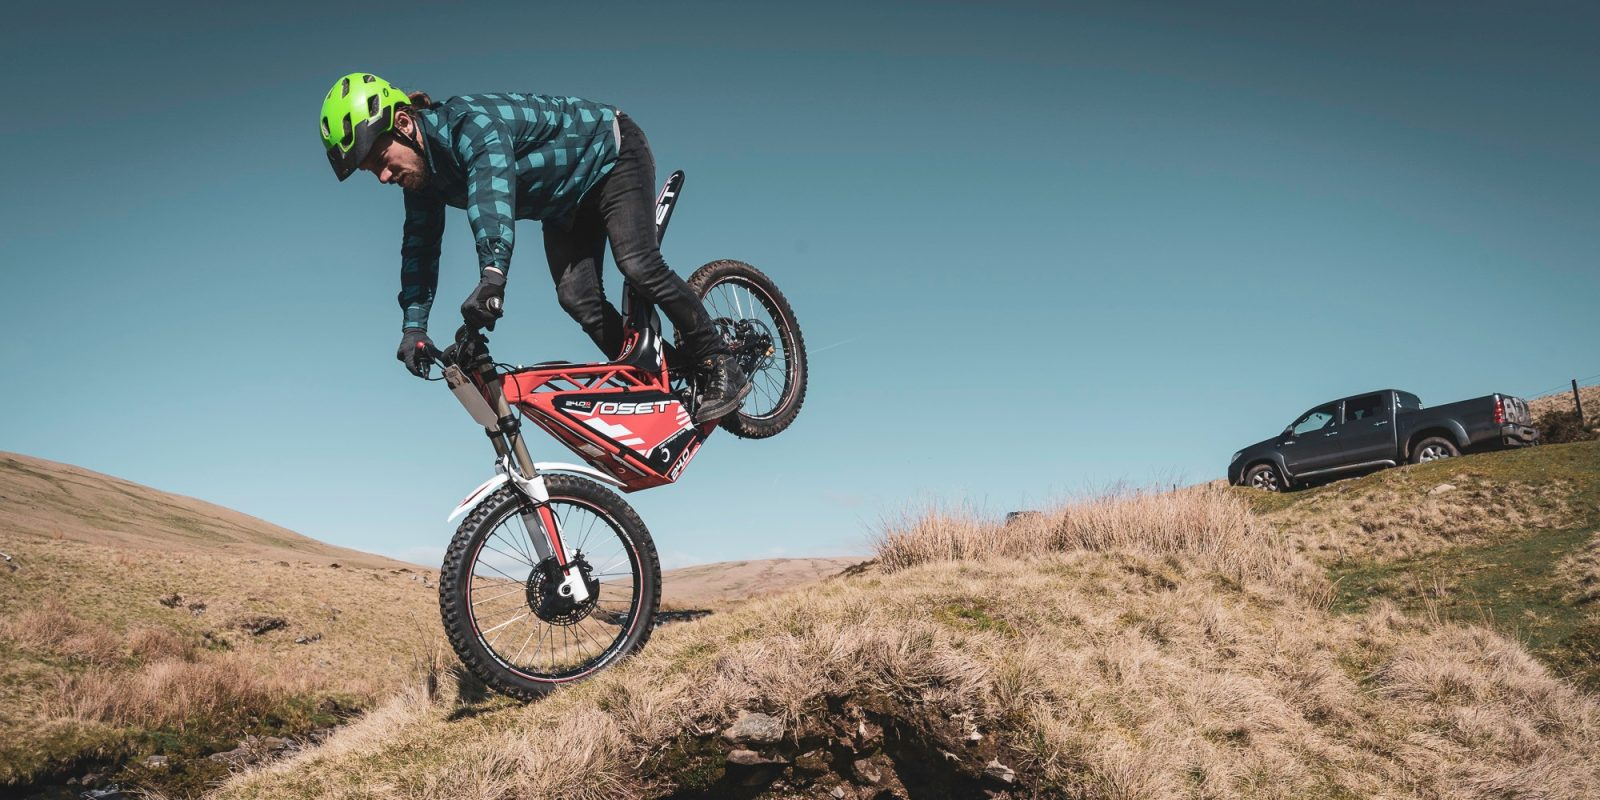 d1dae3f90c5 As electric motorcycles and dirt bikes become more popular, an increasing  number of riders are making the switch from yesterday's technology to  today's.